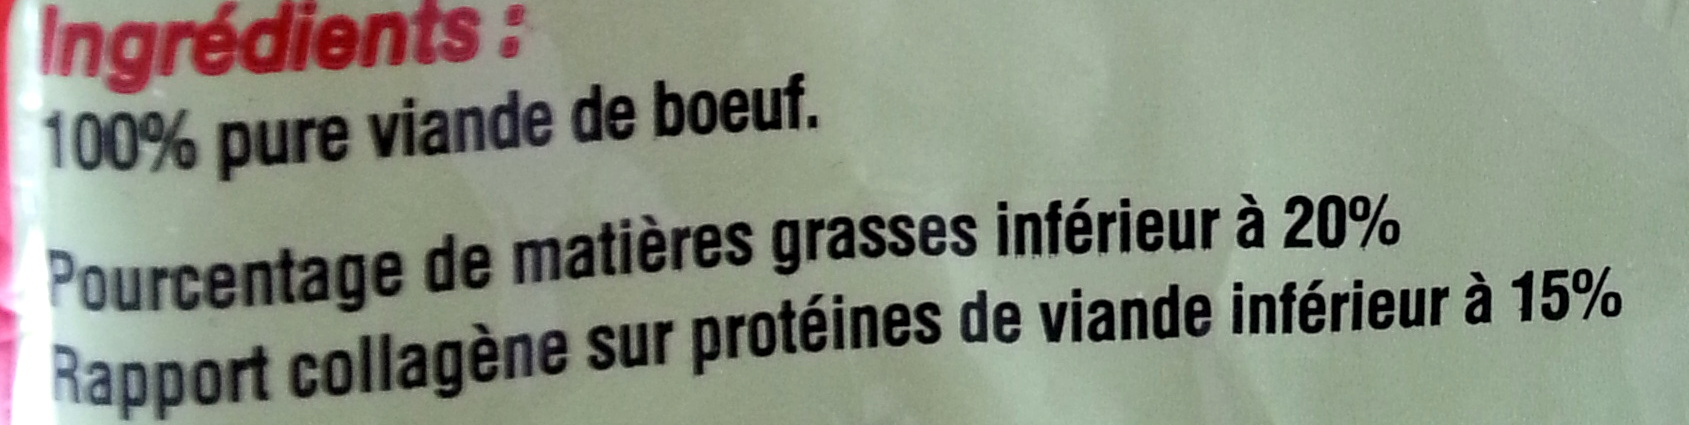 Haché 100% pur boeuf - Ingredients